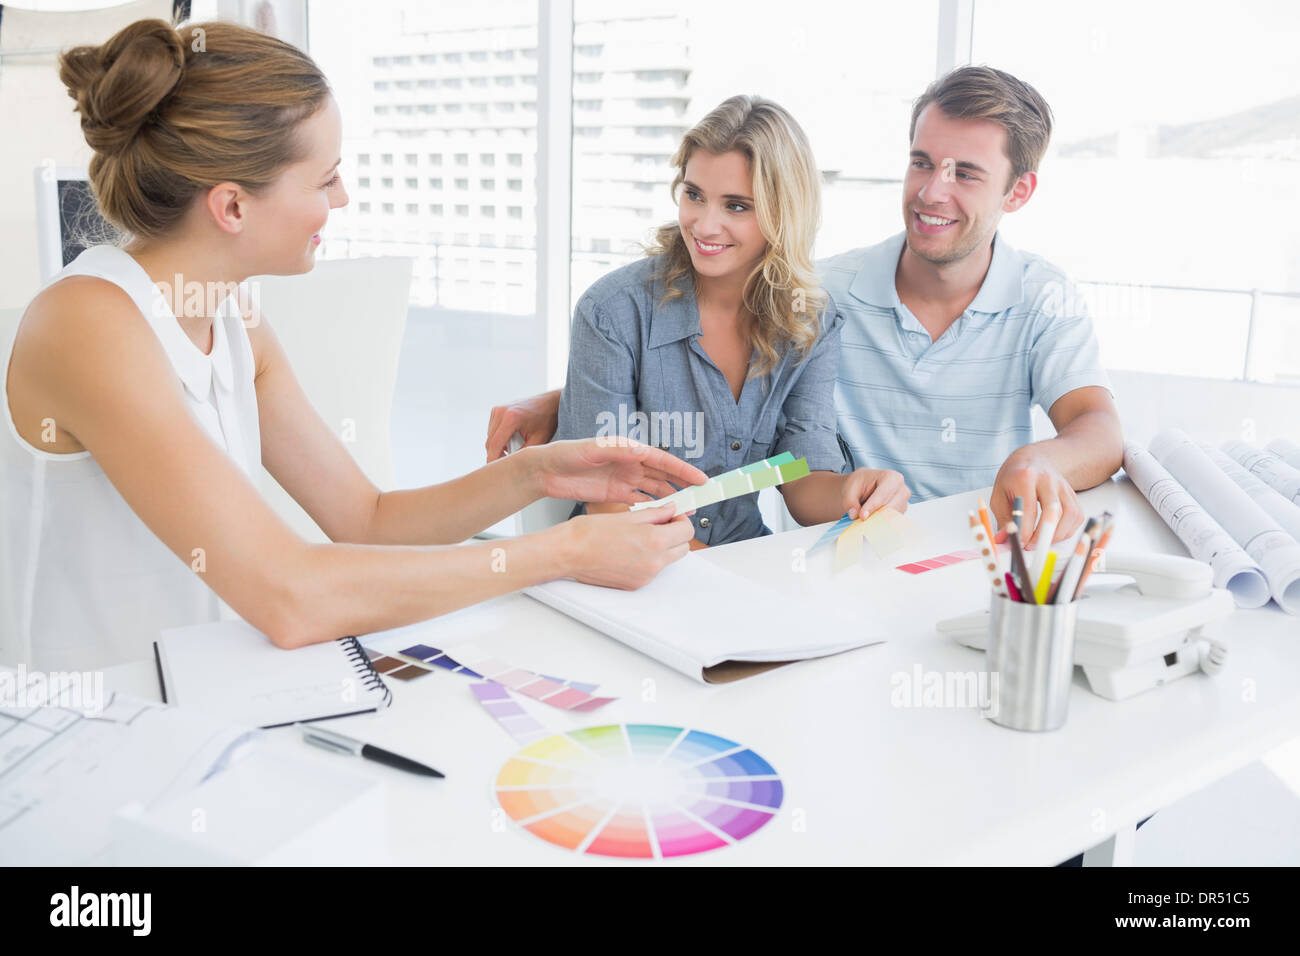 Group of artists working on designs - Stock Image